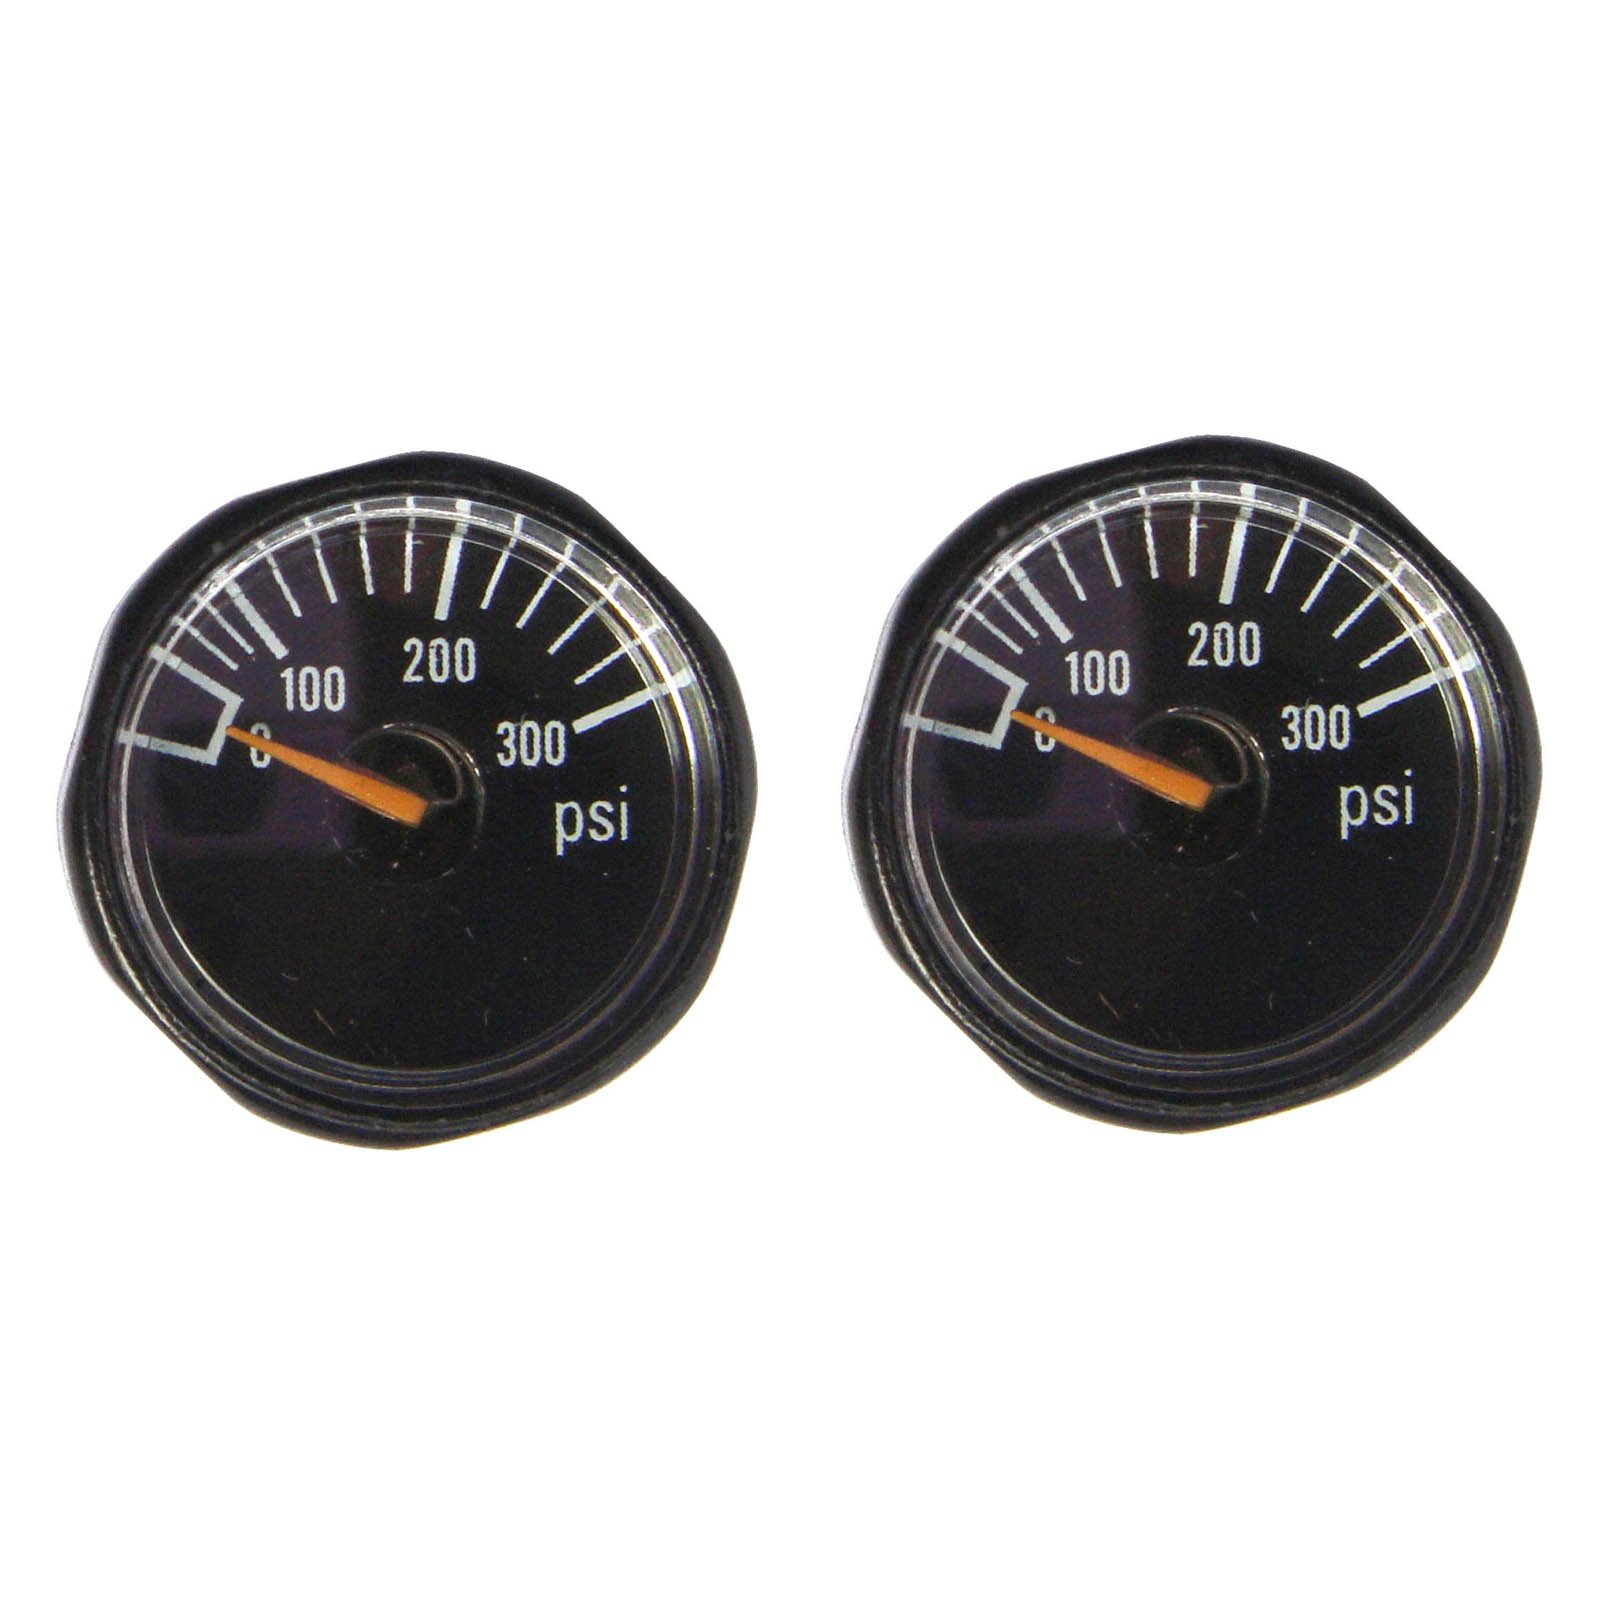 GFSP Outdoor Sports New 300/600/1500/3000/5000 PSI Paintball Micro Gauge,Diameter 25mm,1/8-27NPT (300 PSI) by GFSP Outdoor Sports